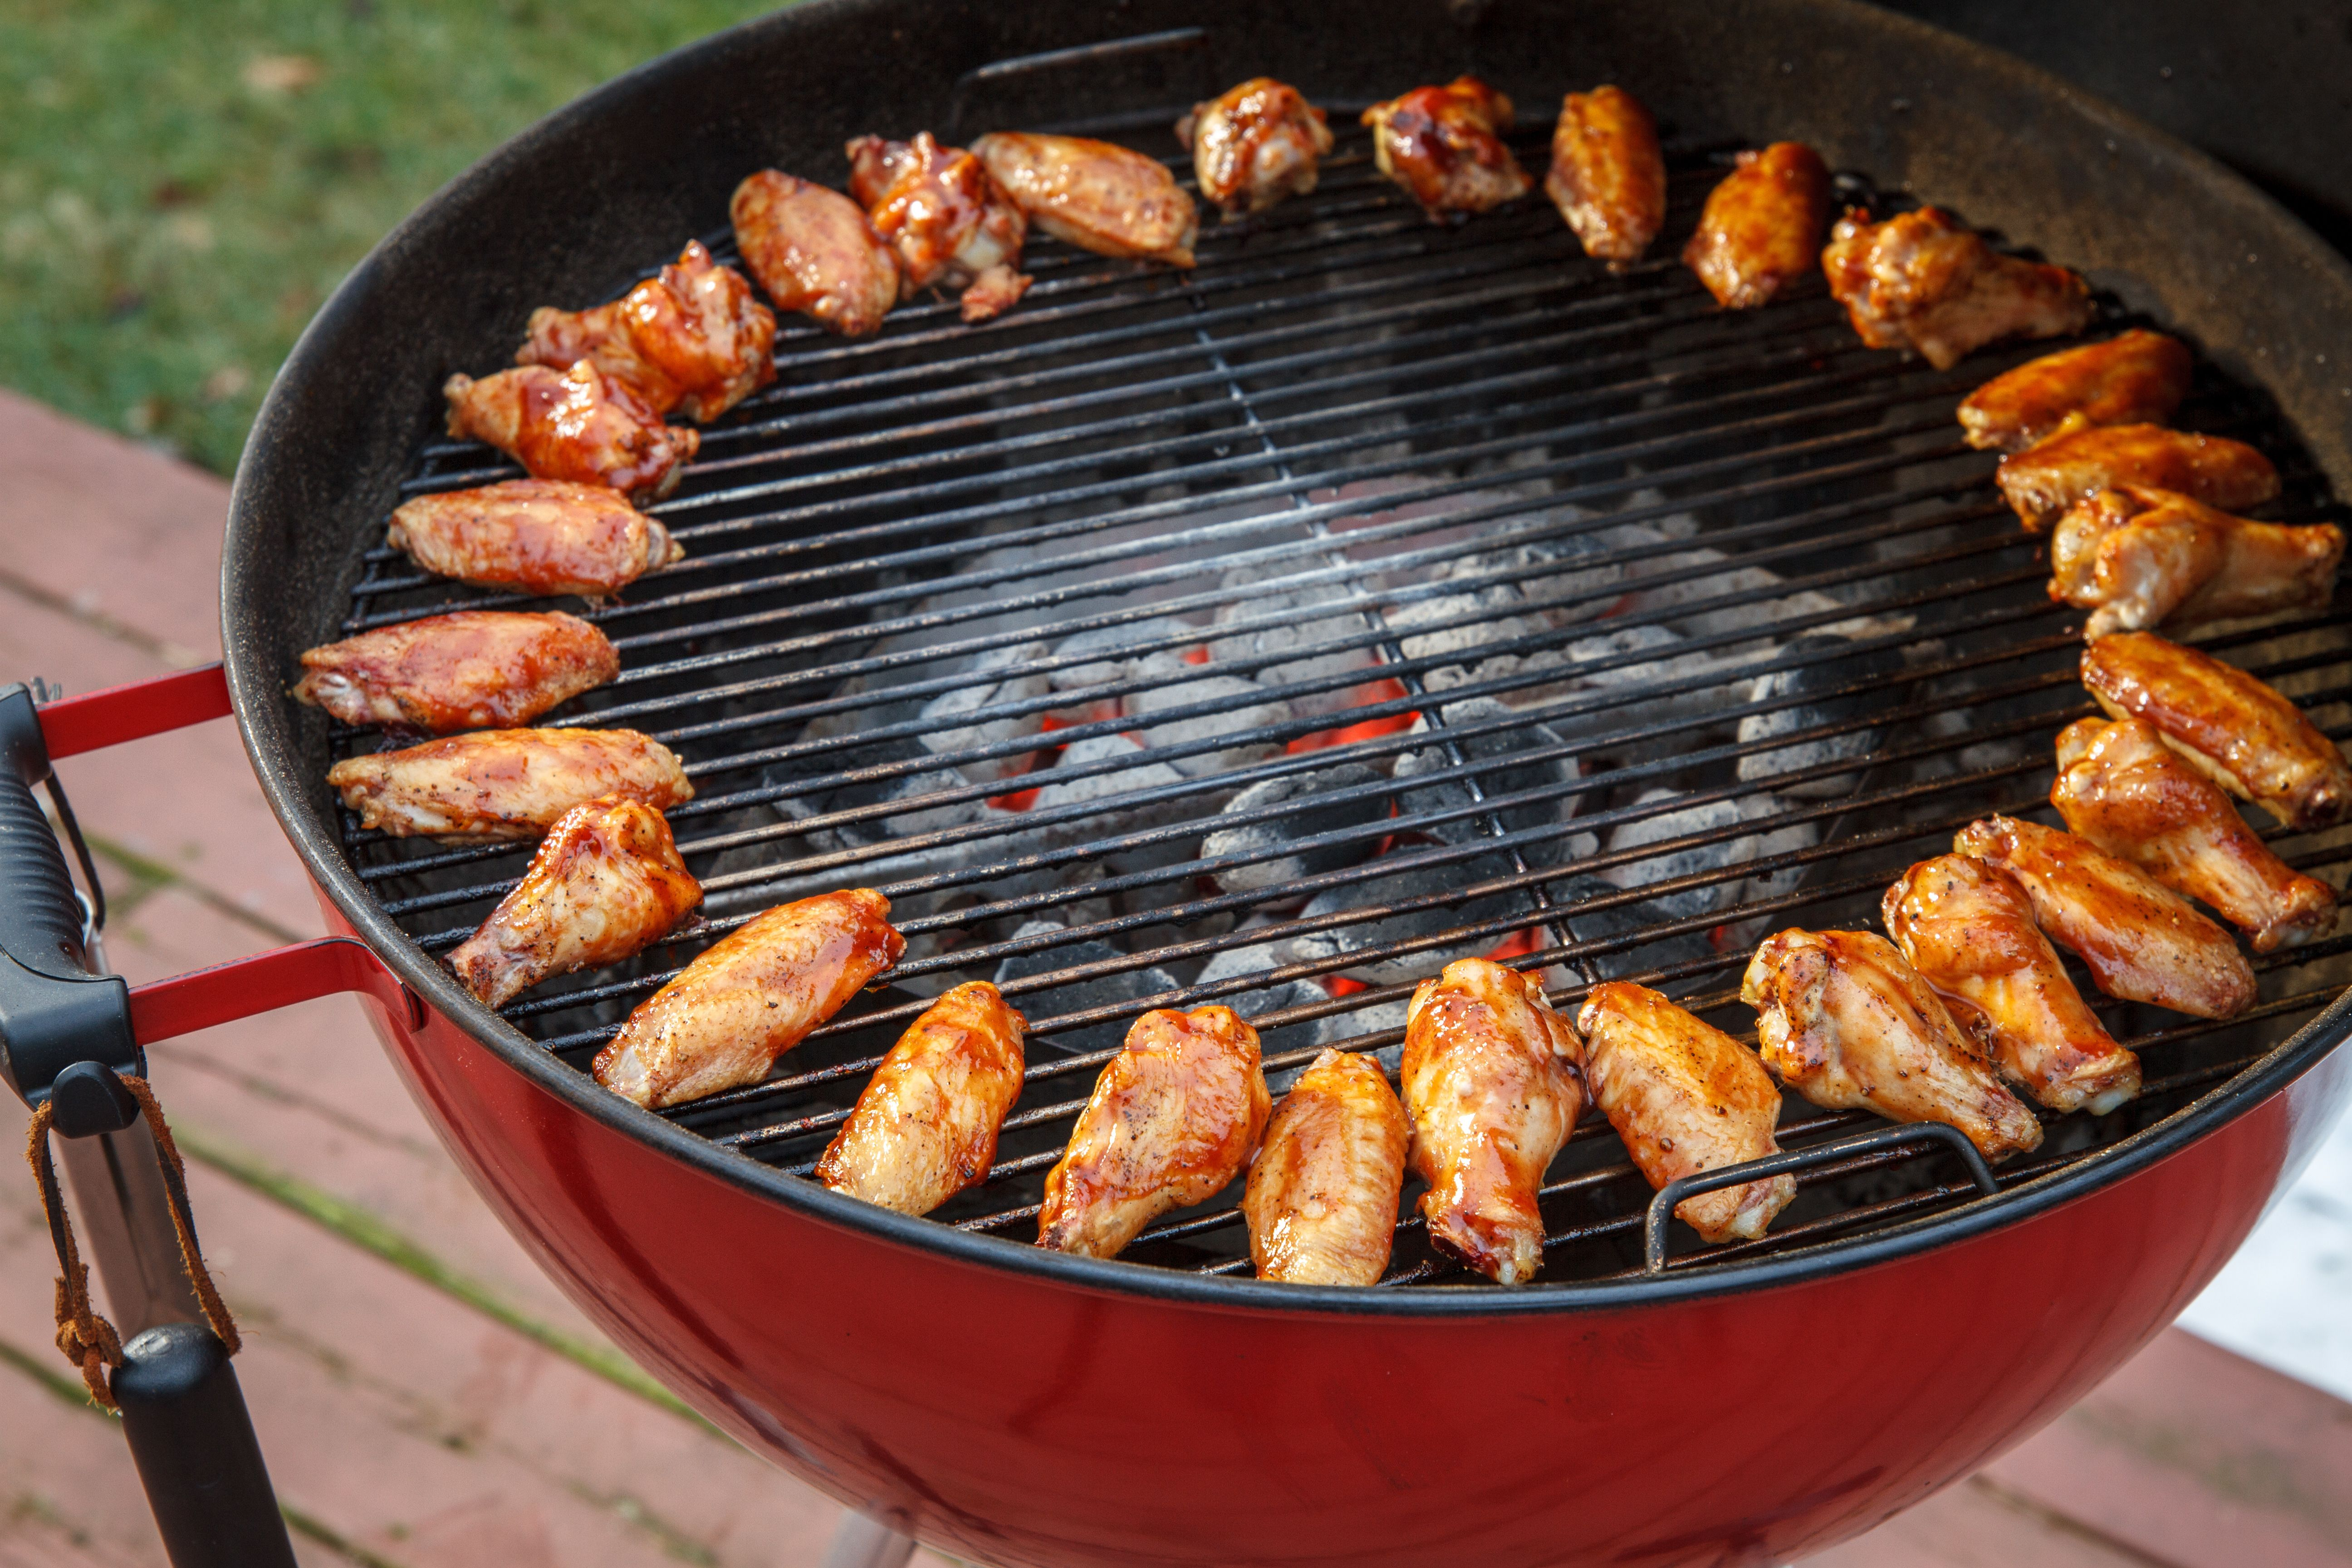 How To Grill Over Indirect Heat On A Charcoal Grill Behind The Grill Weber Grills Cooking On The Grill Charcoal Grill Recipes Charcoal Grill